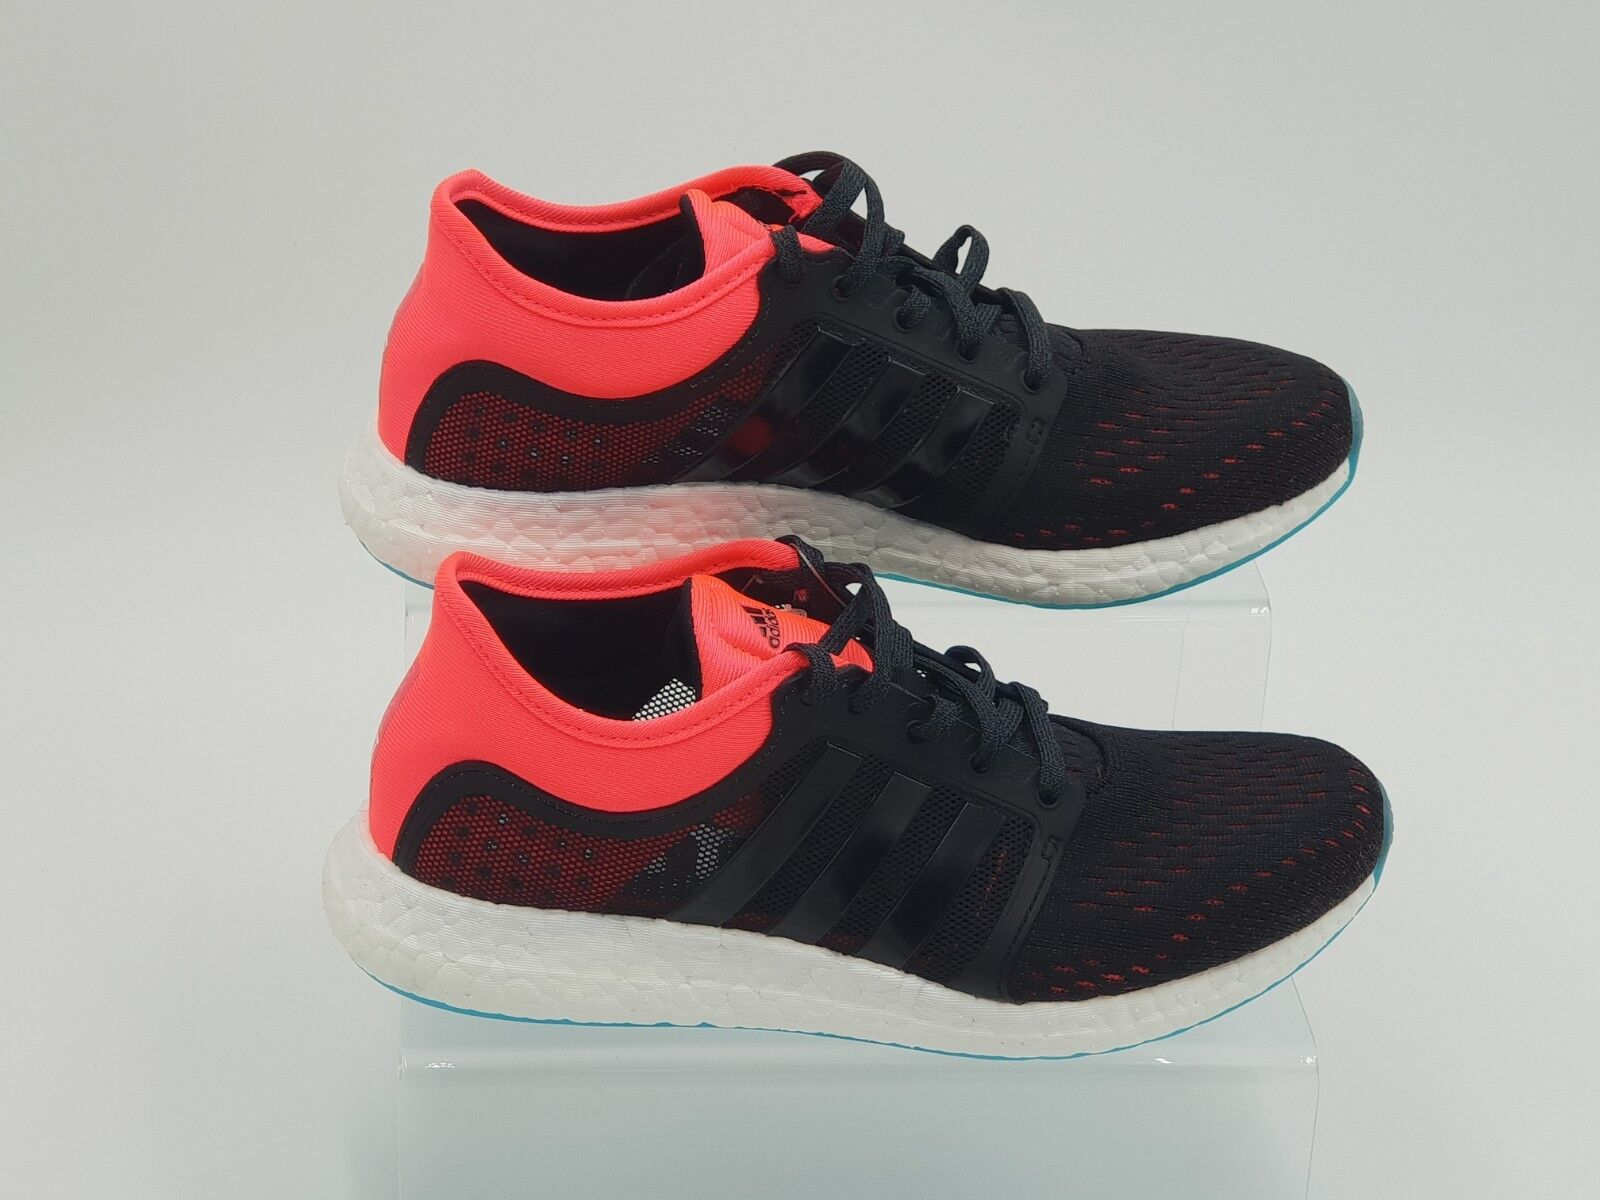 Adidas femmes ClimaCh-ill Rocket Boost Trainers Sneakers